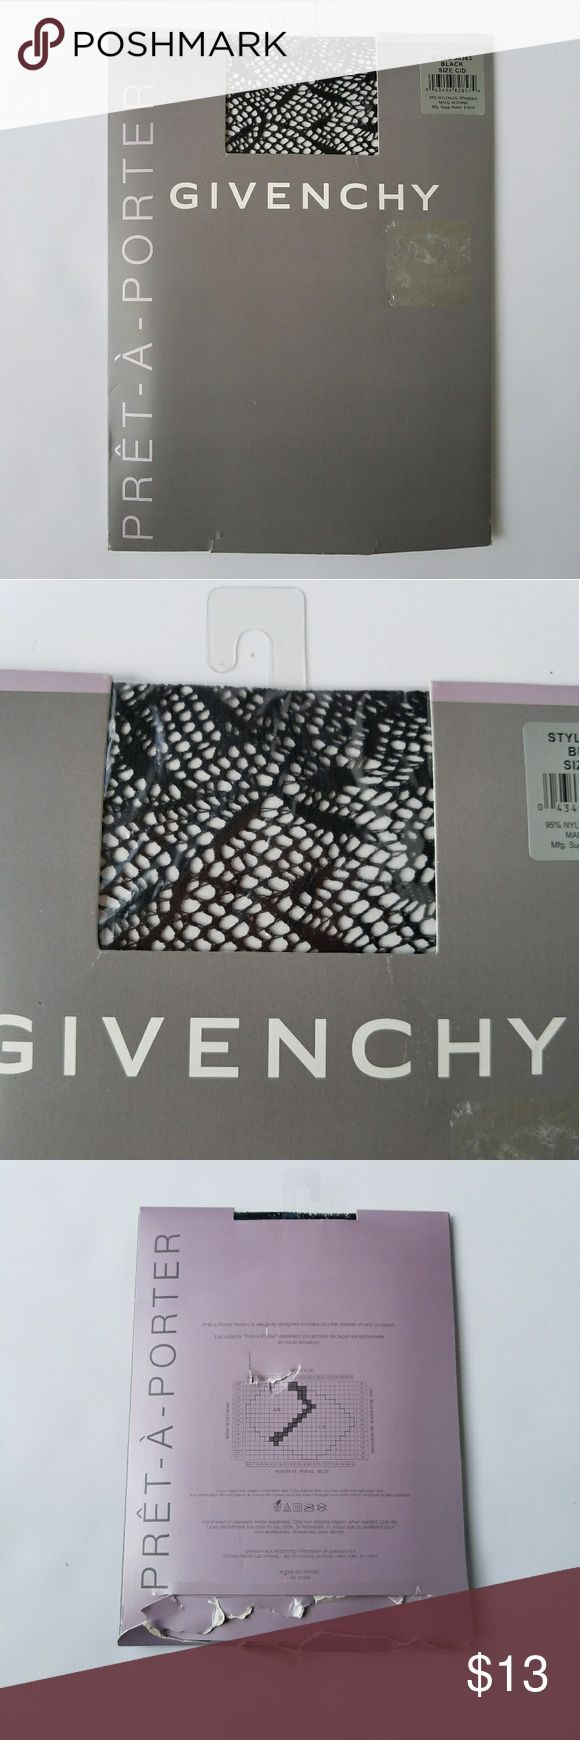 PRICE DROP Gyvenchi Patterned Black Stockings Gyvenchi Tights Pret A Porter Patterned Black Stockings. Size C/ D. Great with a black leather skirt or black romper/ shorts to show off stocking.  NEW Givenchy Accessories Hosiery & Socks